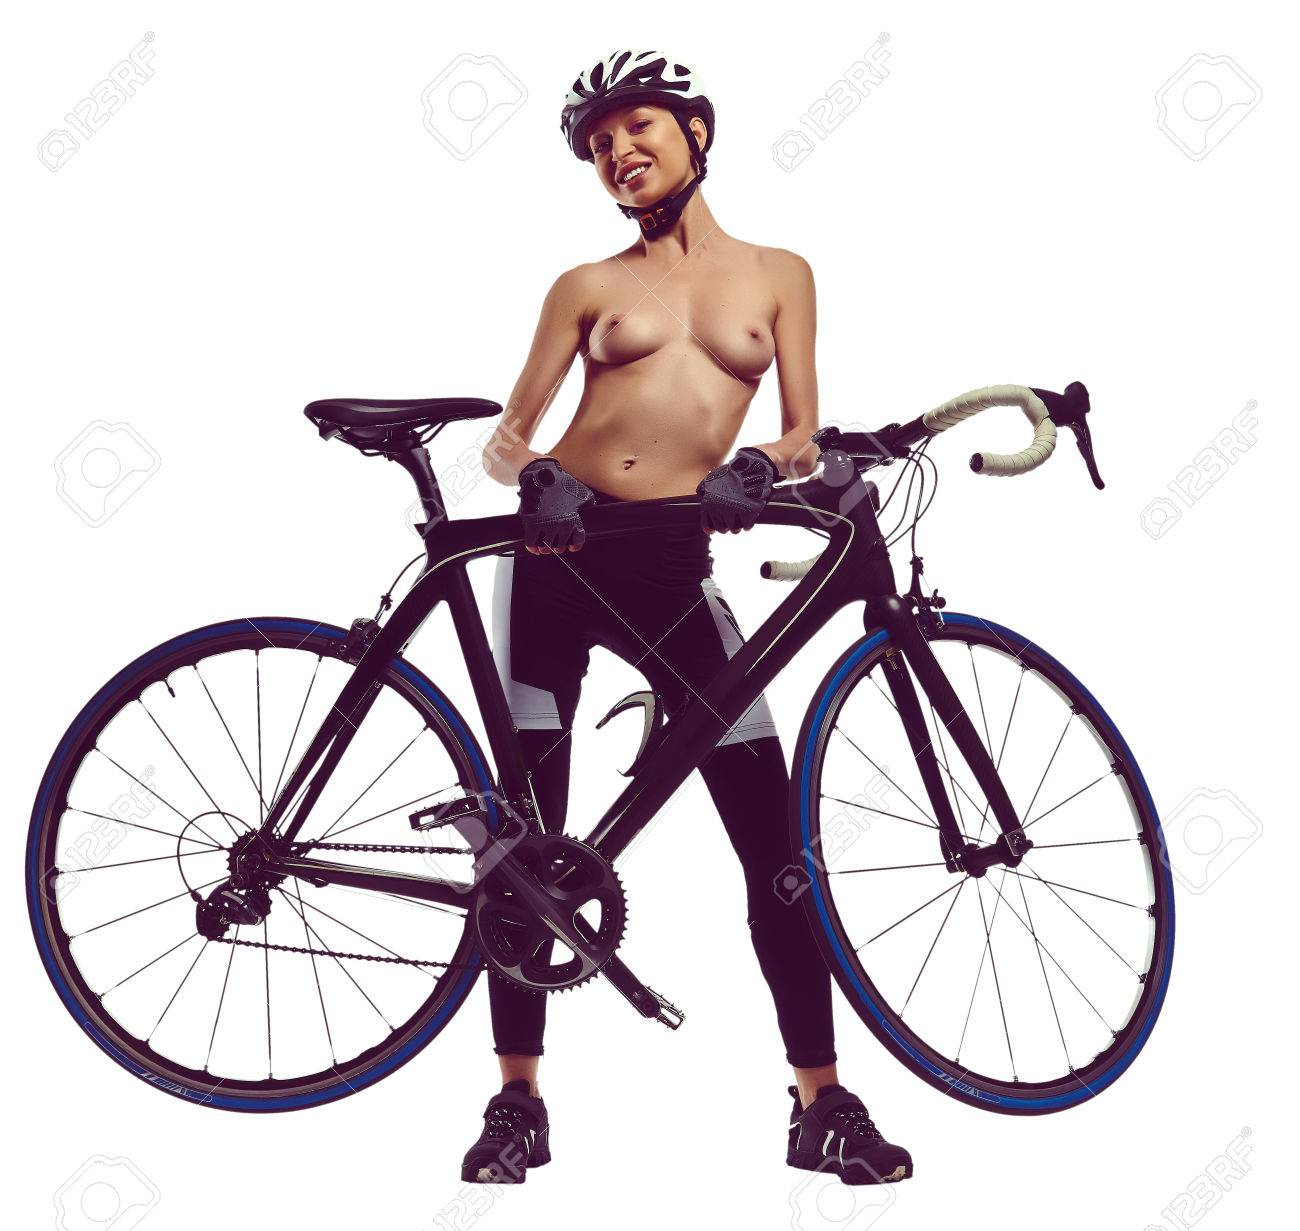 Nude porn women on bicycles — img 1